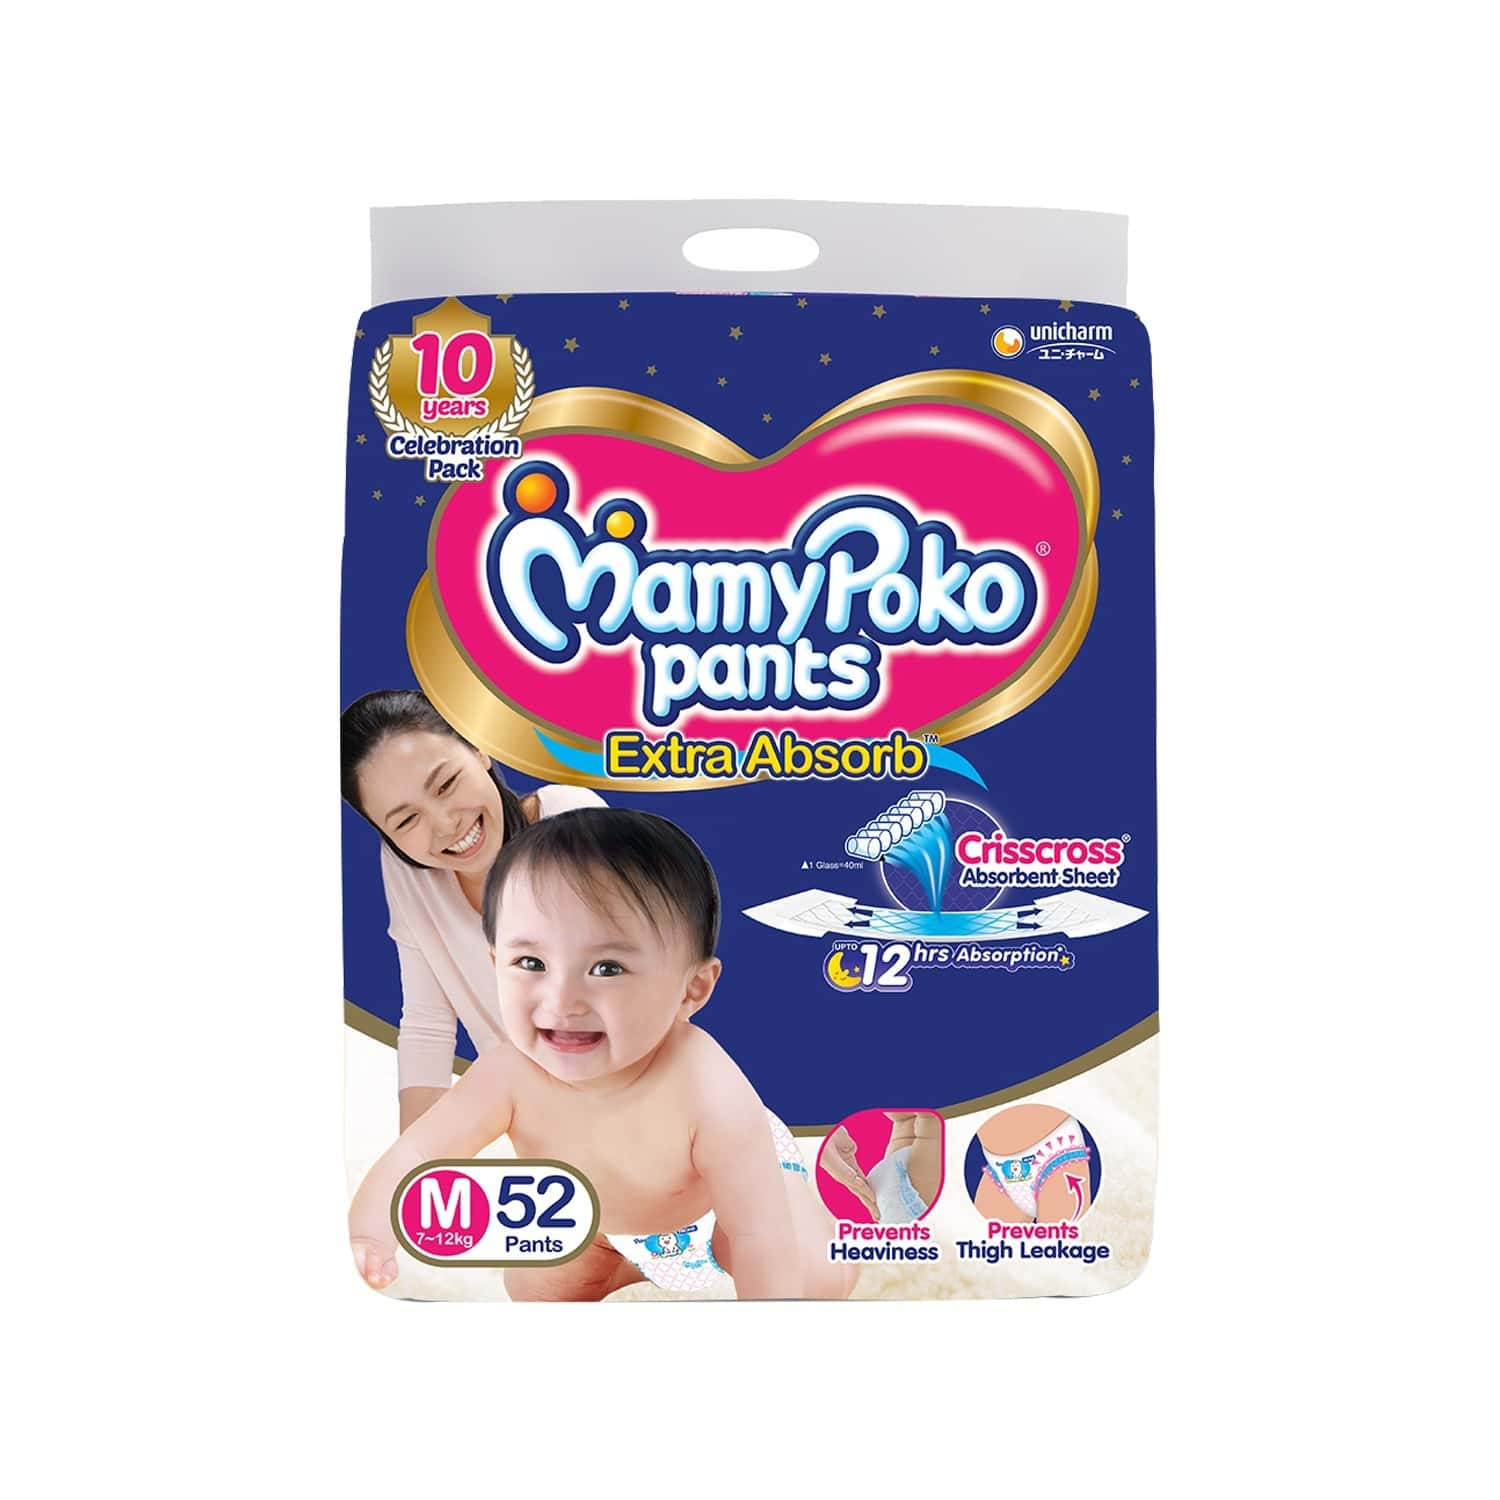 Mamypoko Pants Extra Absorb Diaper - Medium Size, Pack Of 52 Diapers